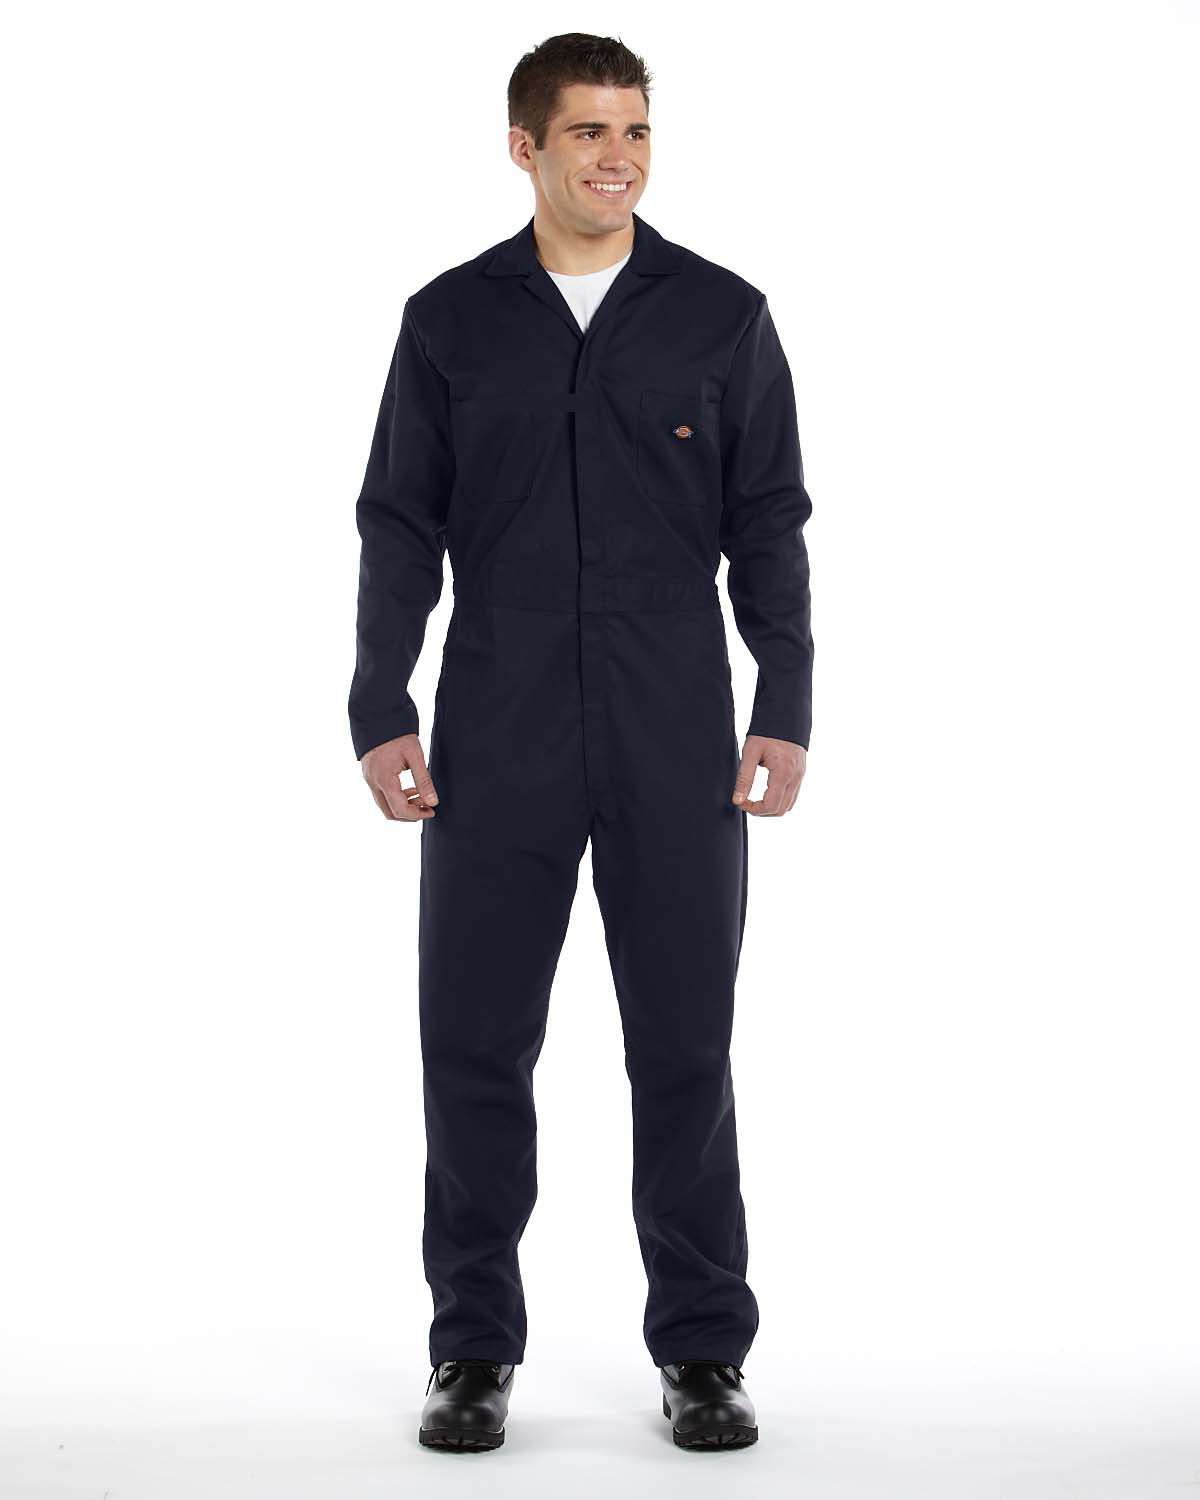 Dickies - 48611 Men's 7.5 oz. Coverall